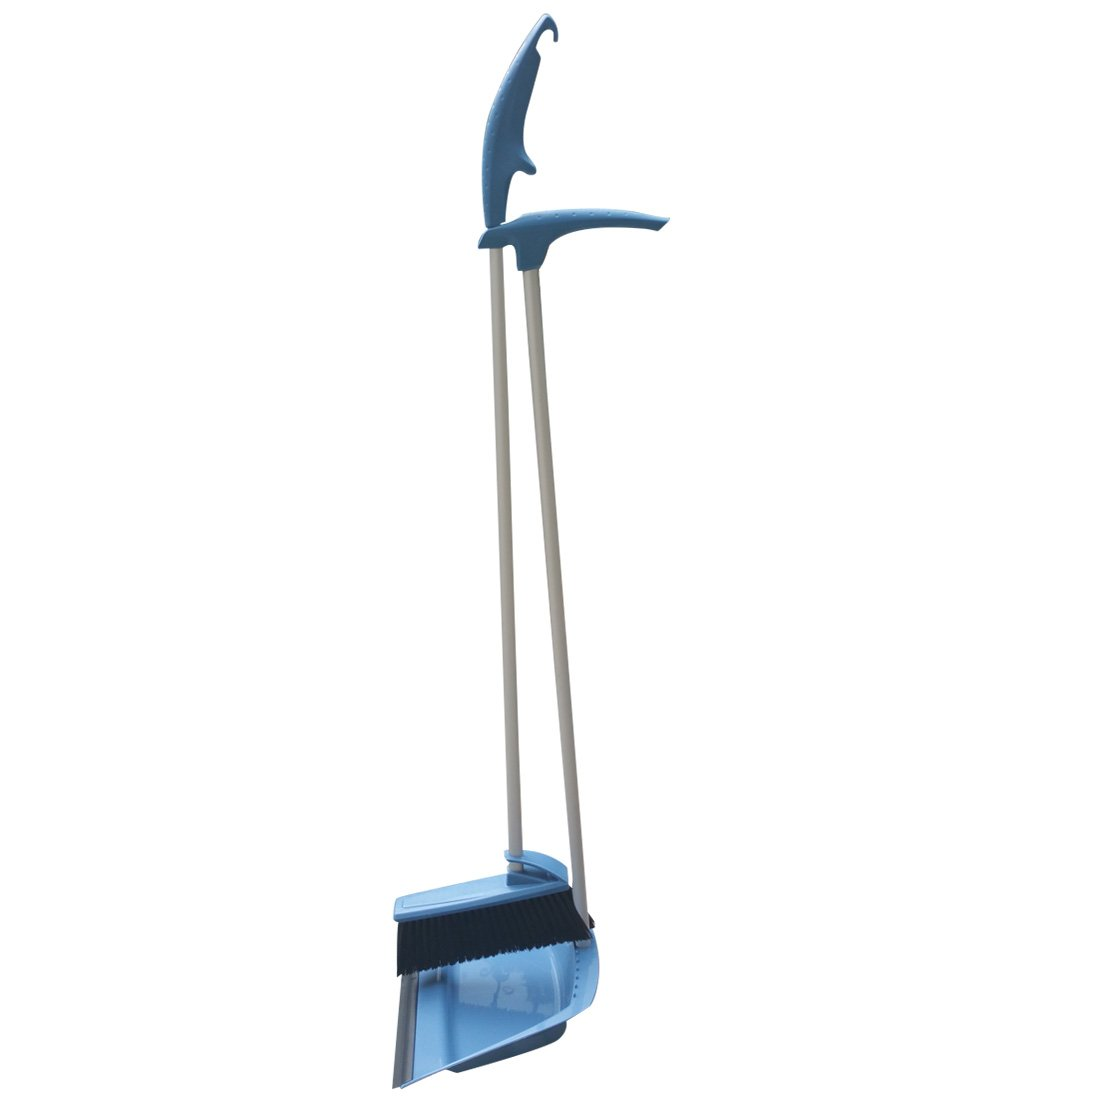 NewFerU Upright Hand Dustpan With Rubber Lip and Brush Holder Broom Combo Clean Organizer Sweep Up Tool Set With Plastic Metal Long Handle for Lobby Kitchen Garden Garage Outdoors Indoor 36' (Blue) Jinyi VR1045